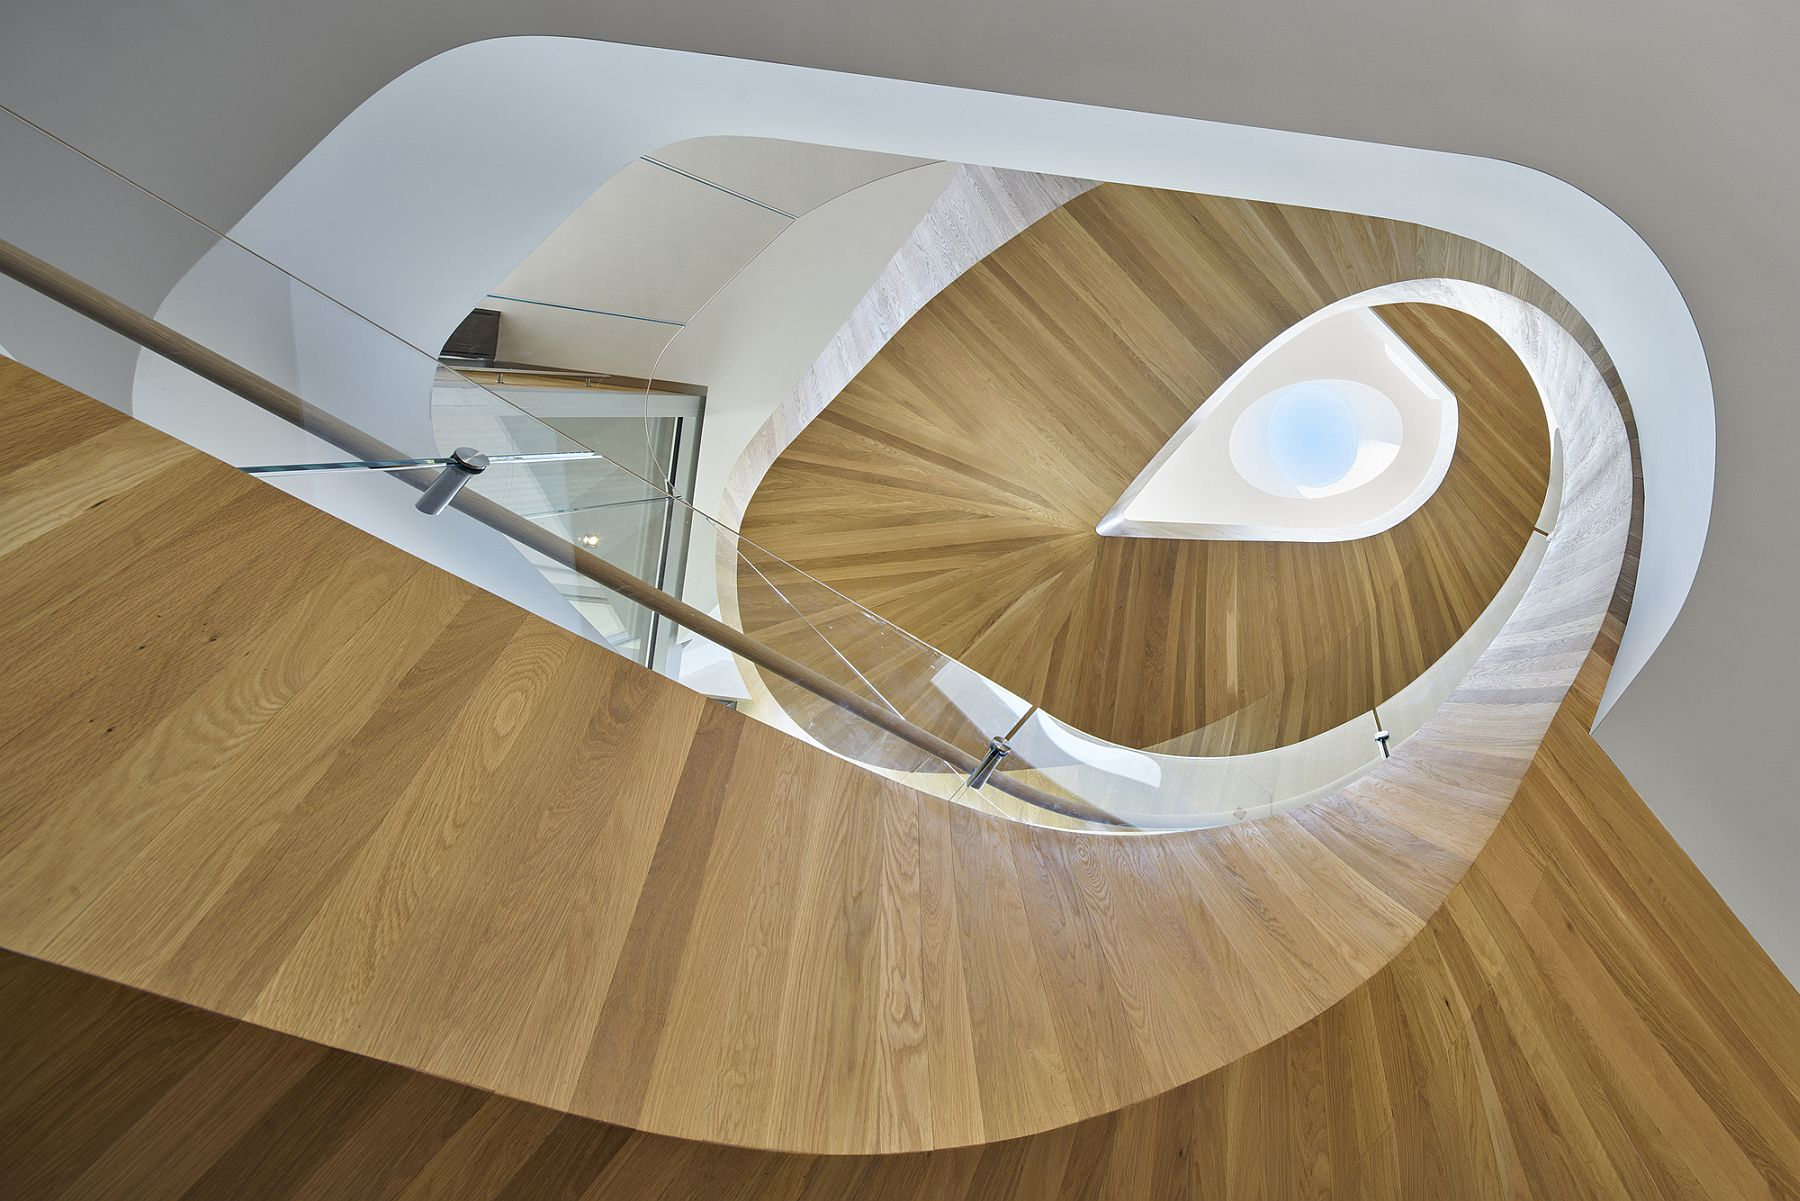 Stunning helical staircase adds grandeur to the interior